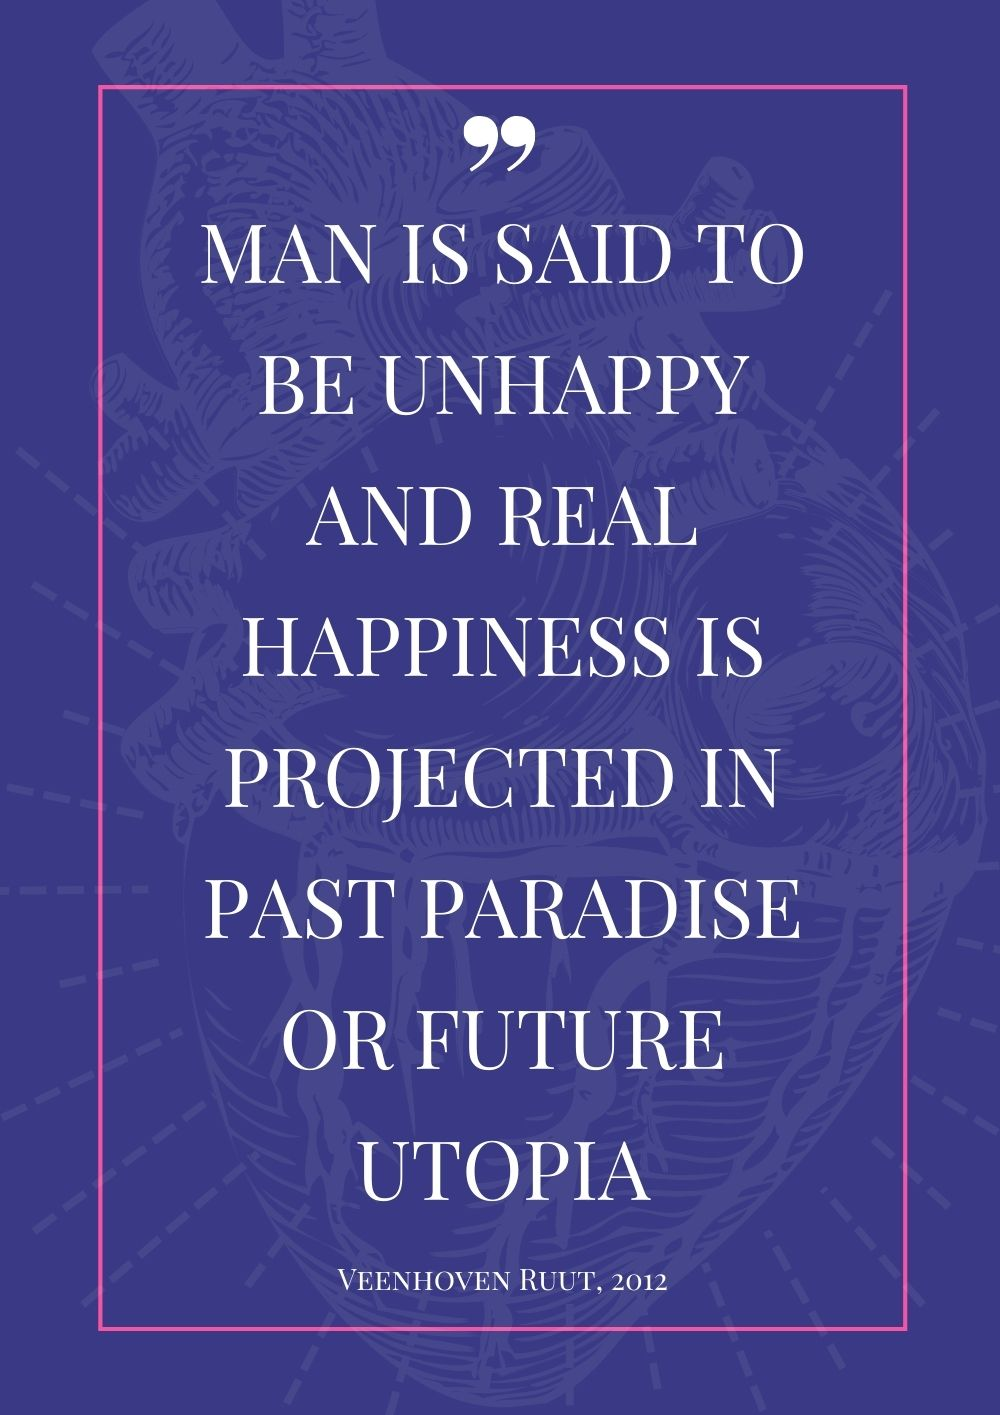 Man is said to be unhappy and real happiness is projected in past paradise or future utopia